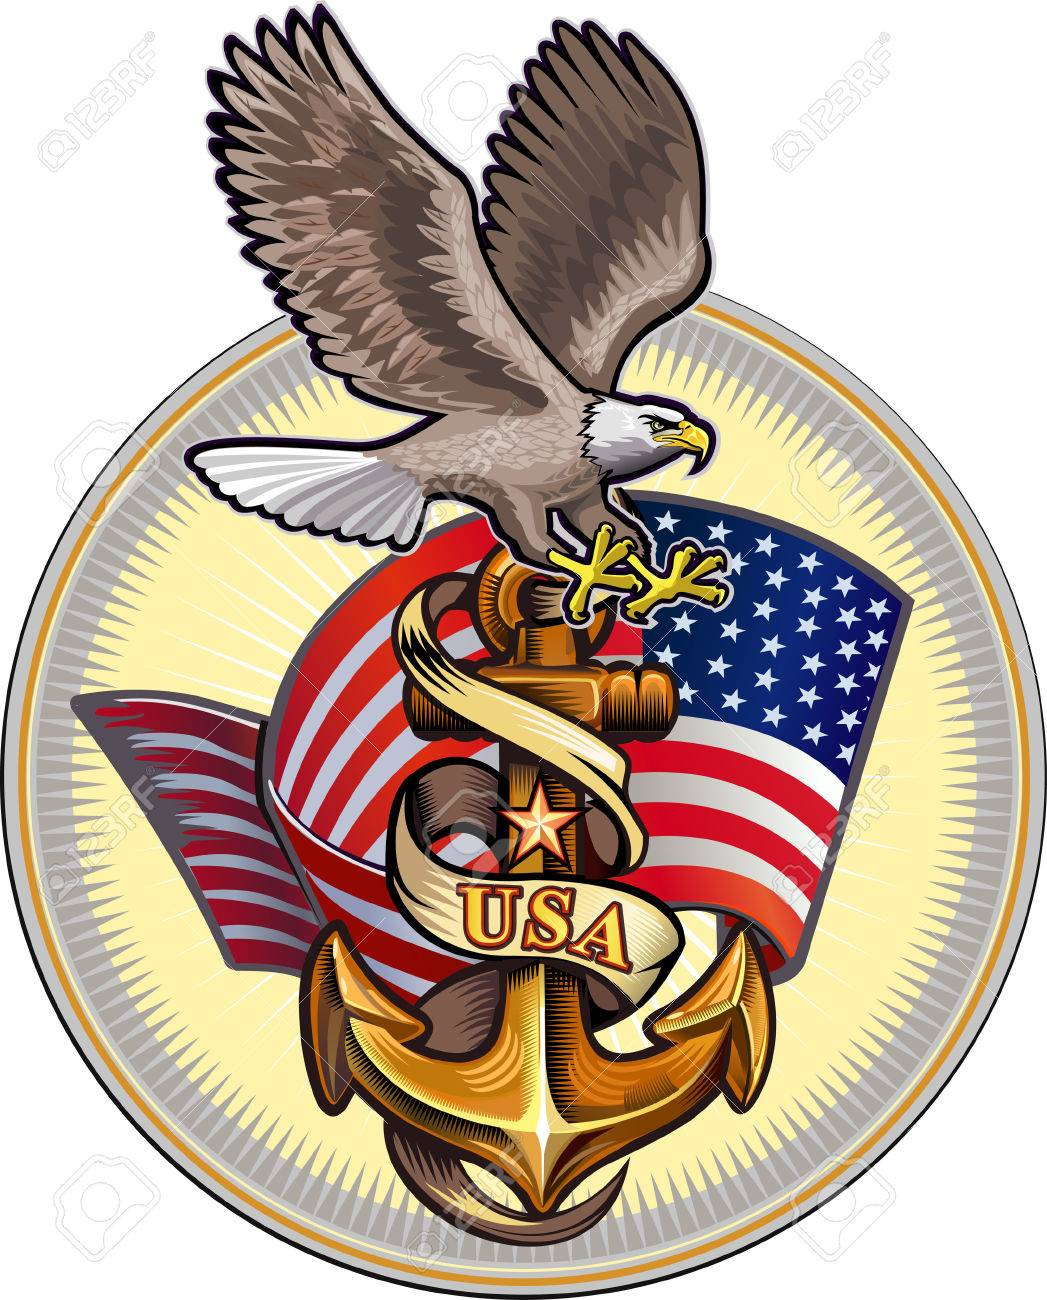 US Navy Eagle.